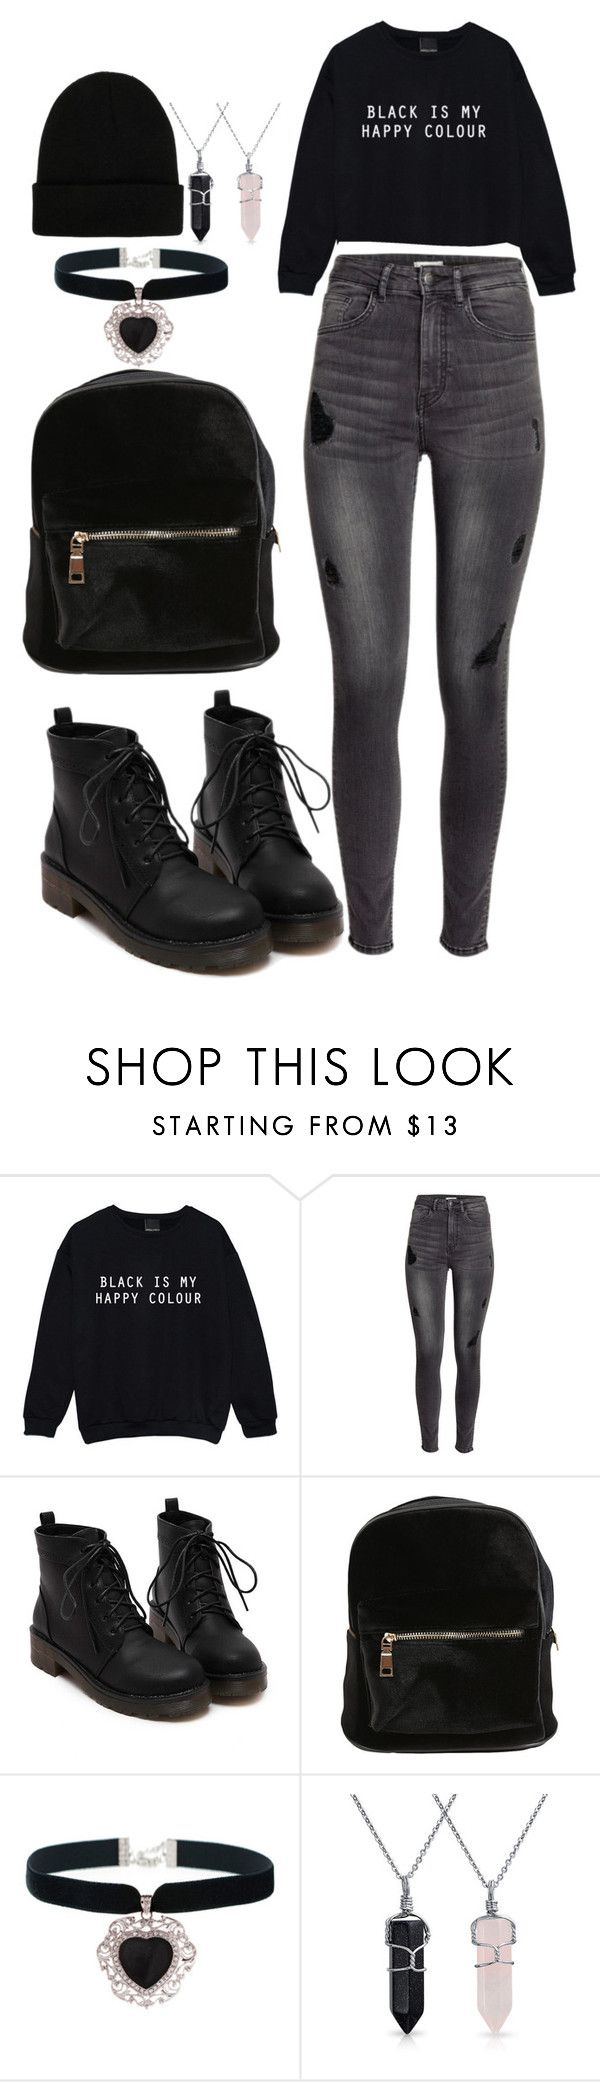 """my everyday tomboy look"" by chap15906248 ❤ liked on Polyvore featuring H&M, Rock 'N Rose, Bling Jewelry and NLY Accessories"